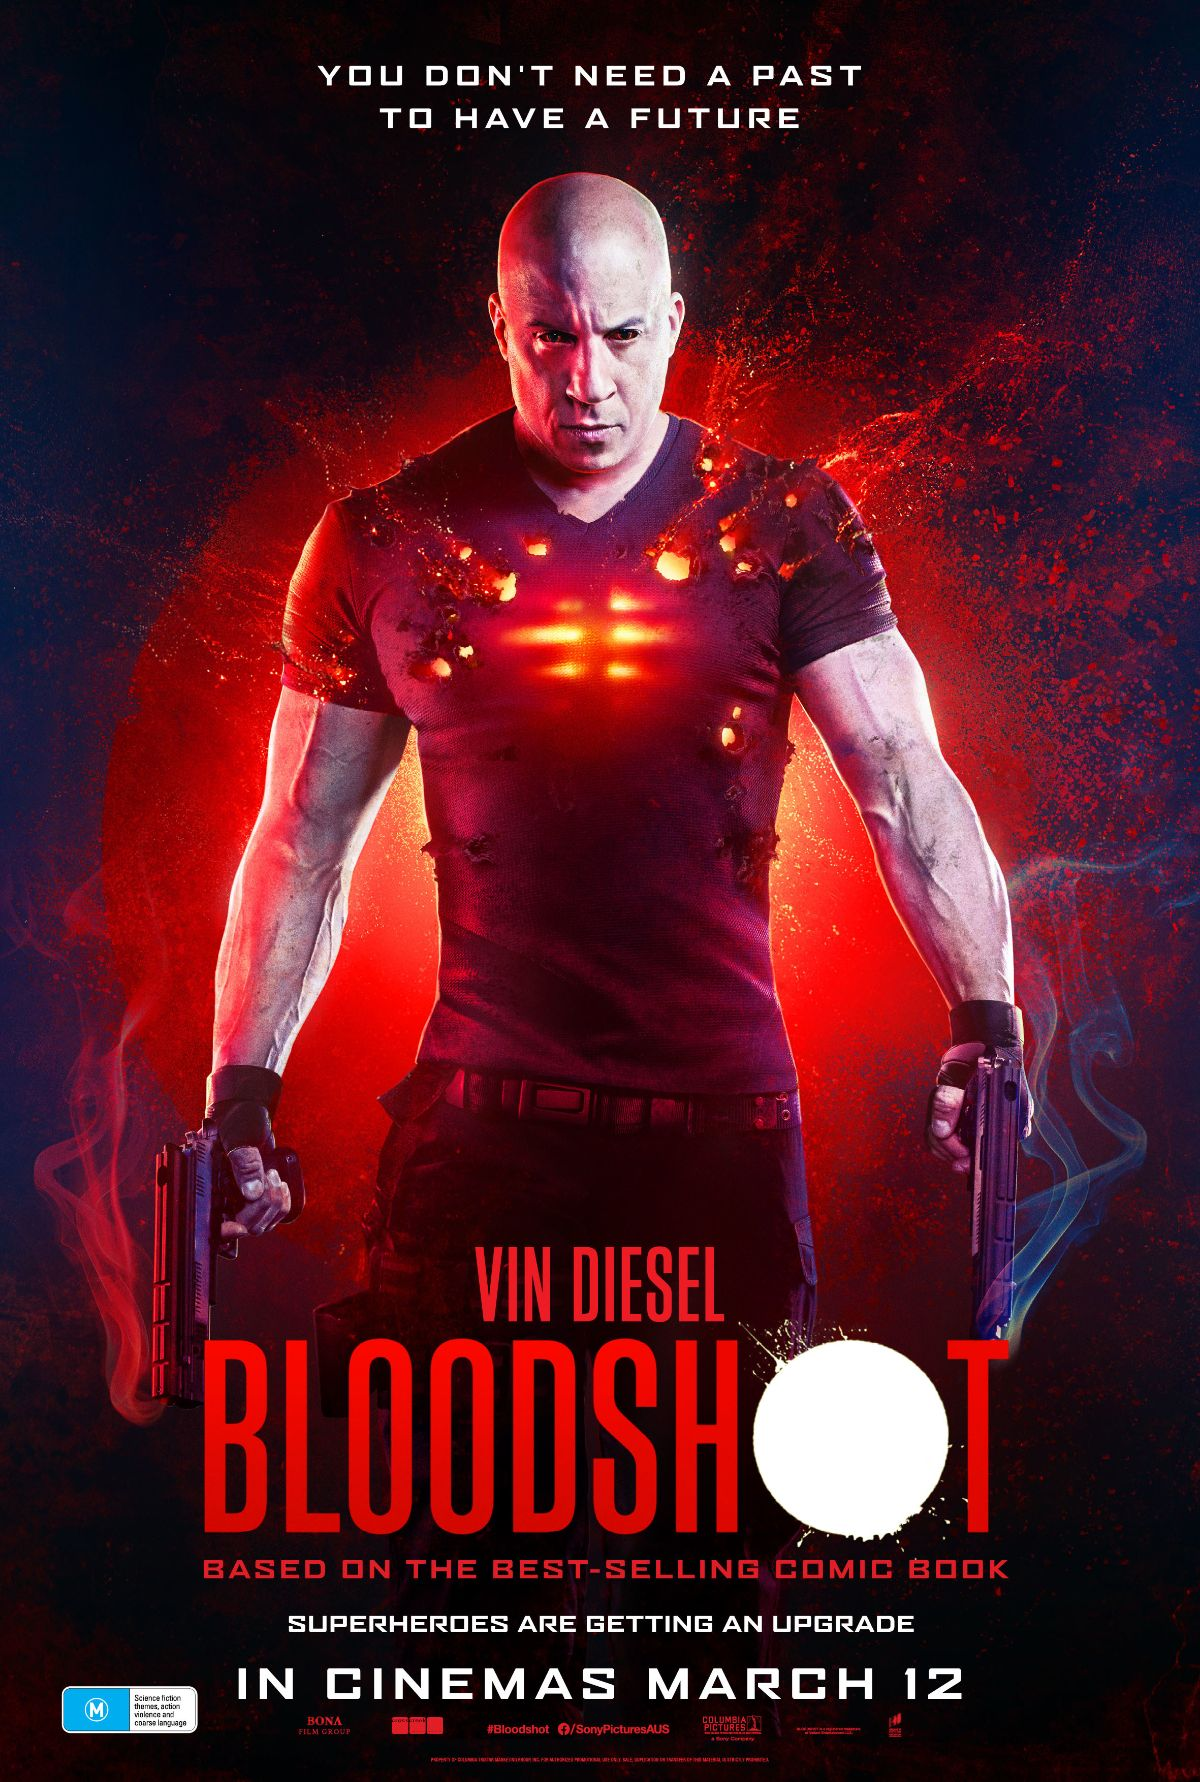 Win a double pass to see Bloodshot